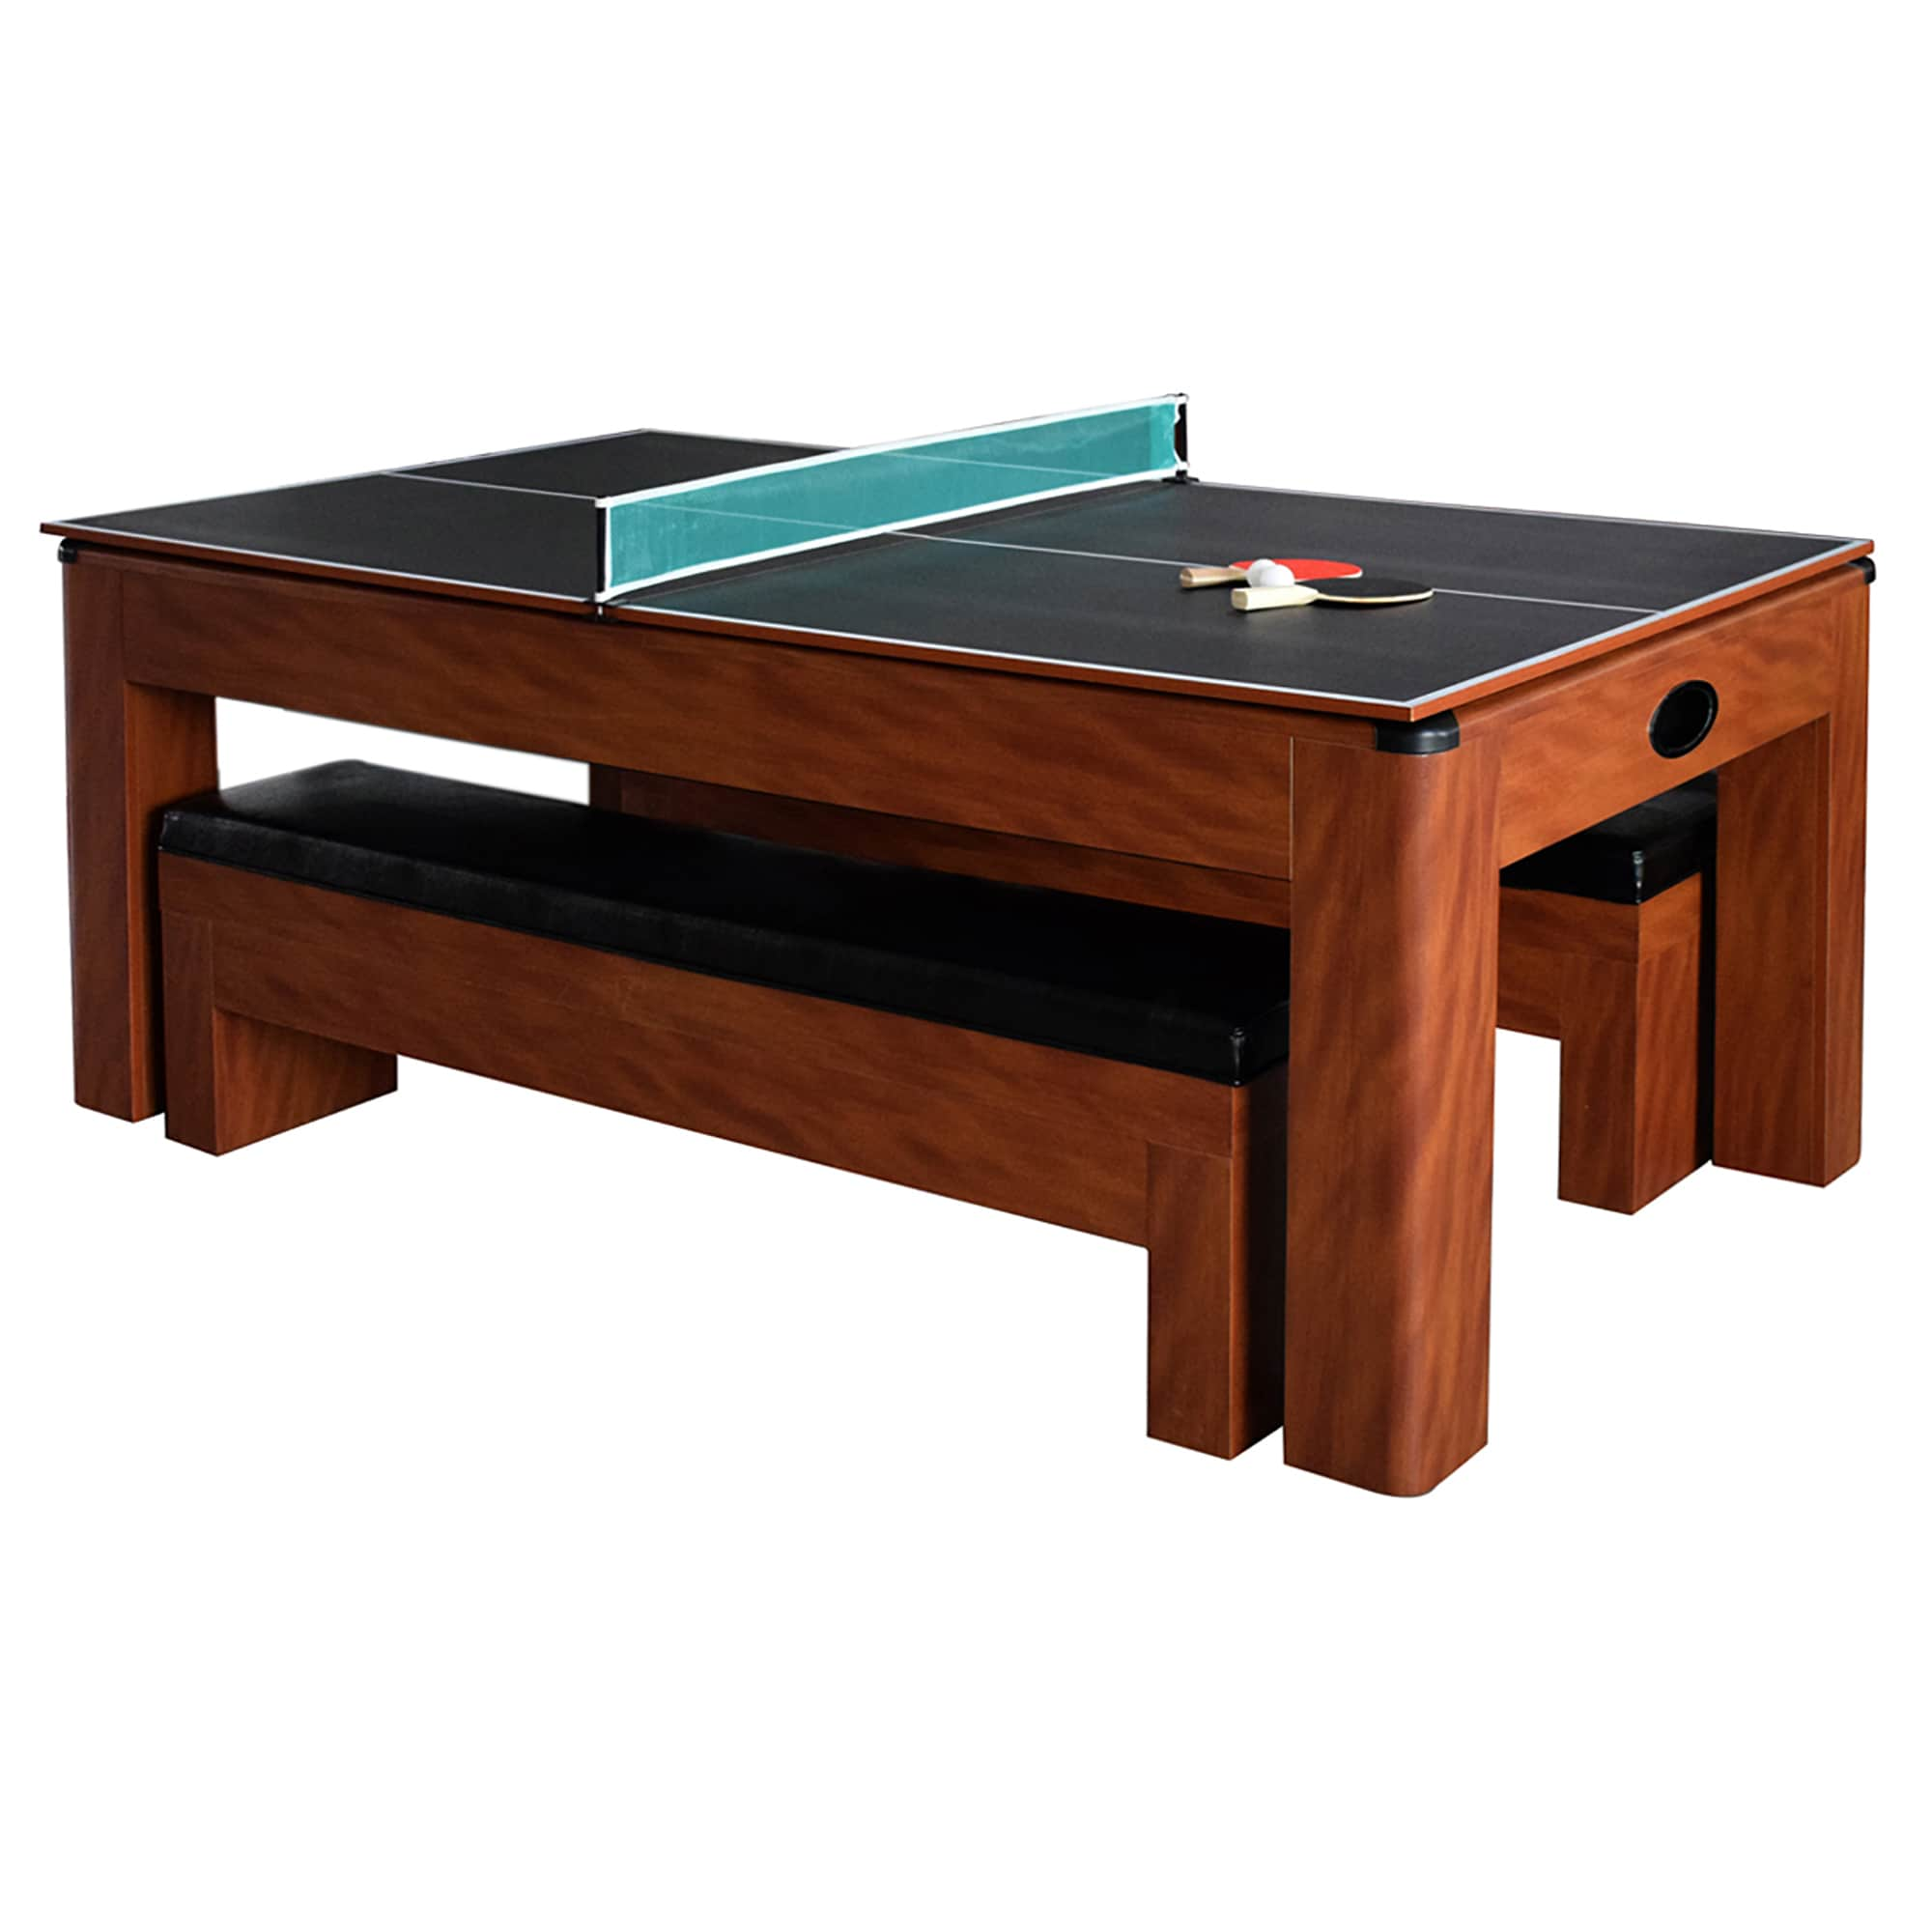 Shop Sherwood Brown MDF 7 Foot Air Hockey Table With Benches   Free  Shipping Today   Overstock.com   12707851